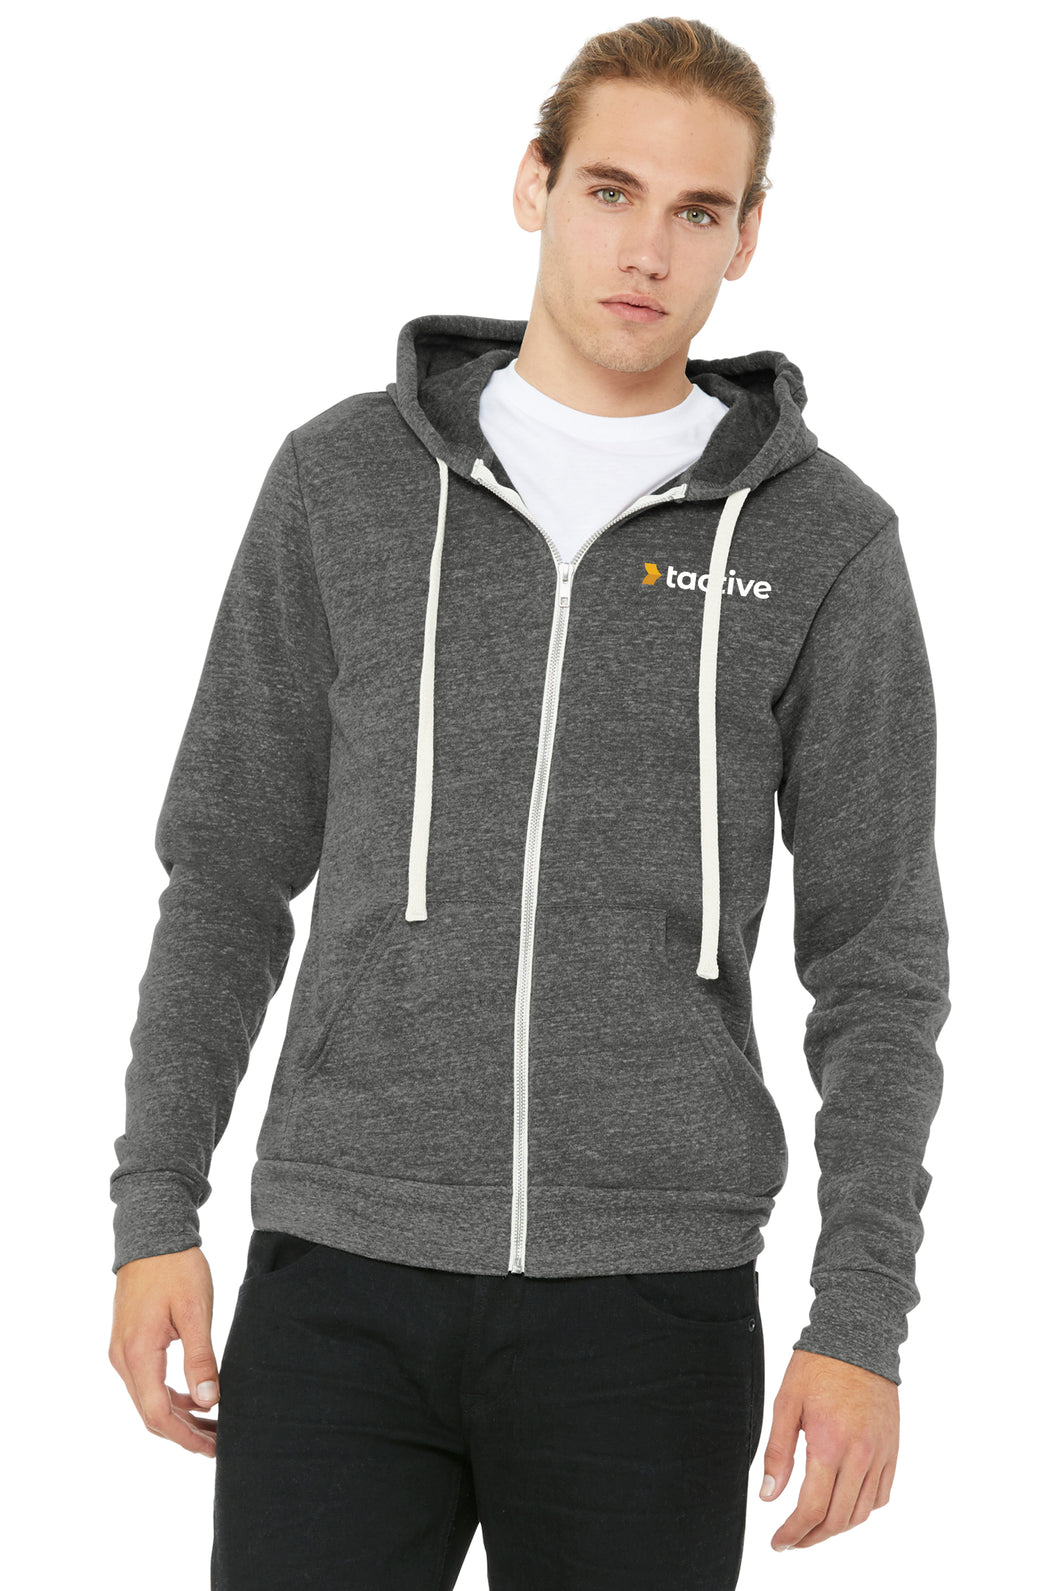 Tactive Triblend Sponge Fleece Full-Zip Hoodie